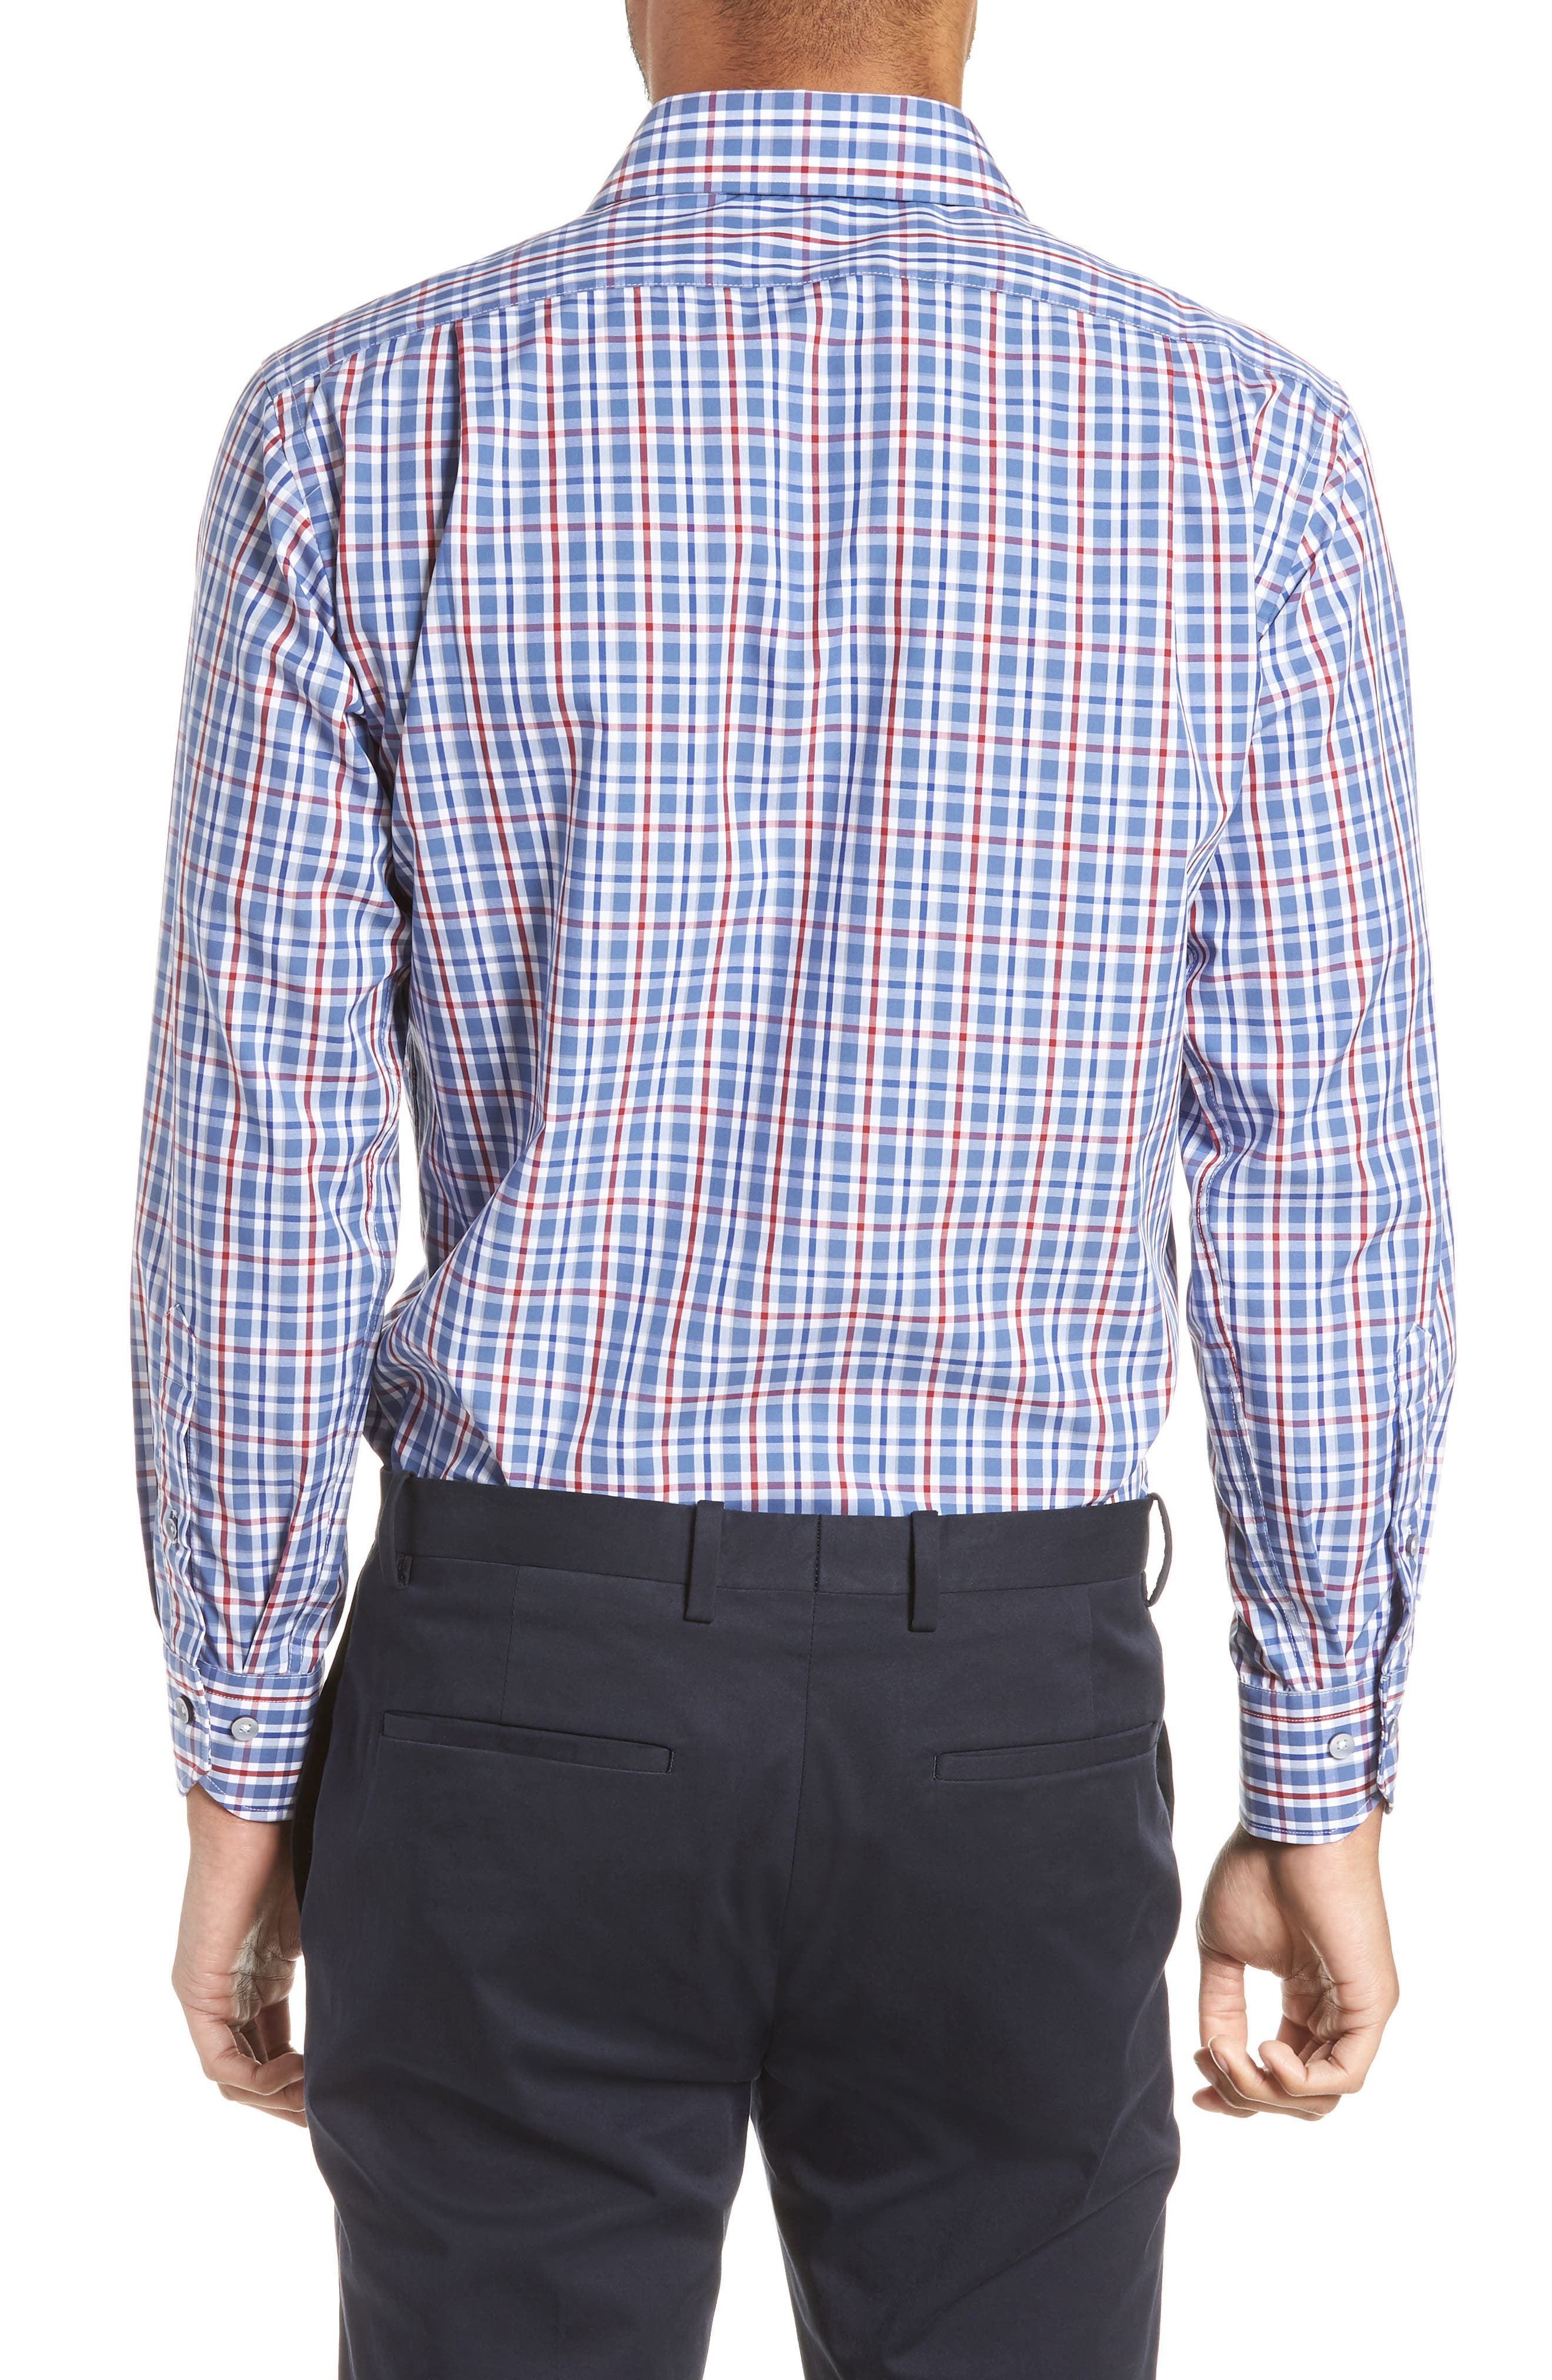 Trim Fit Plaid Dress Shirt,                             Alternate thumbnail 3, color,                             410